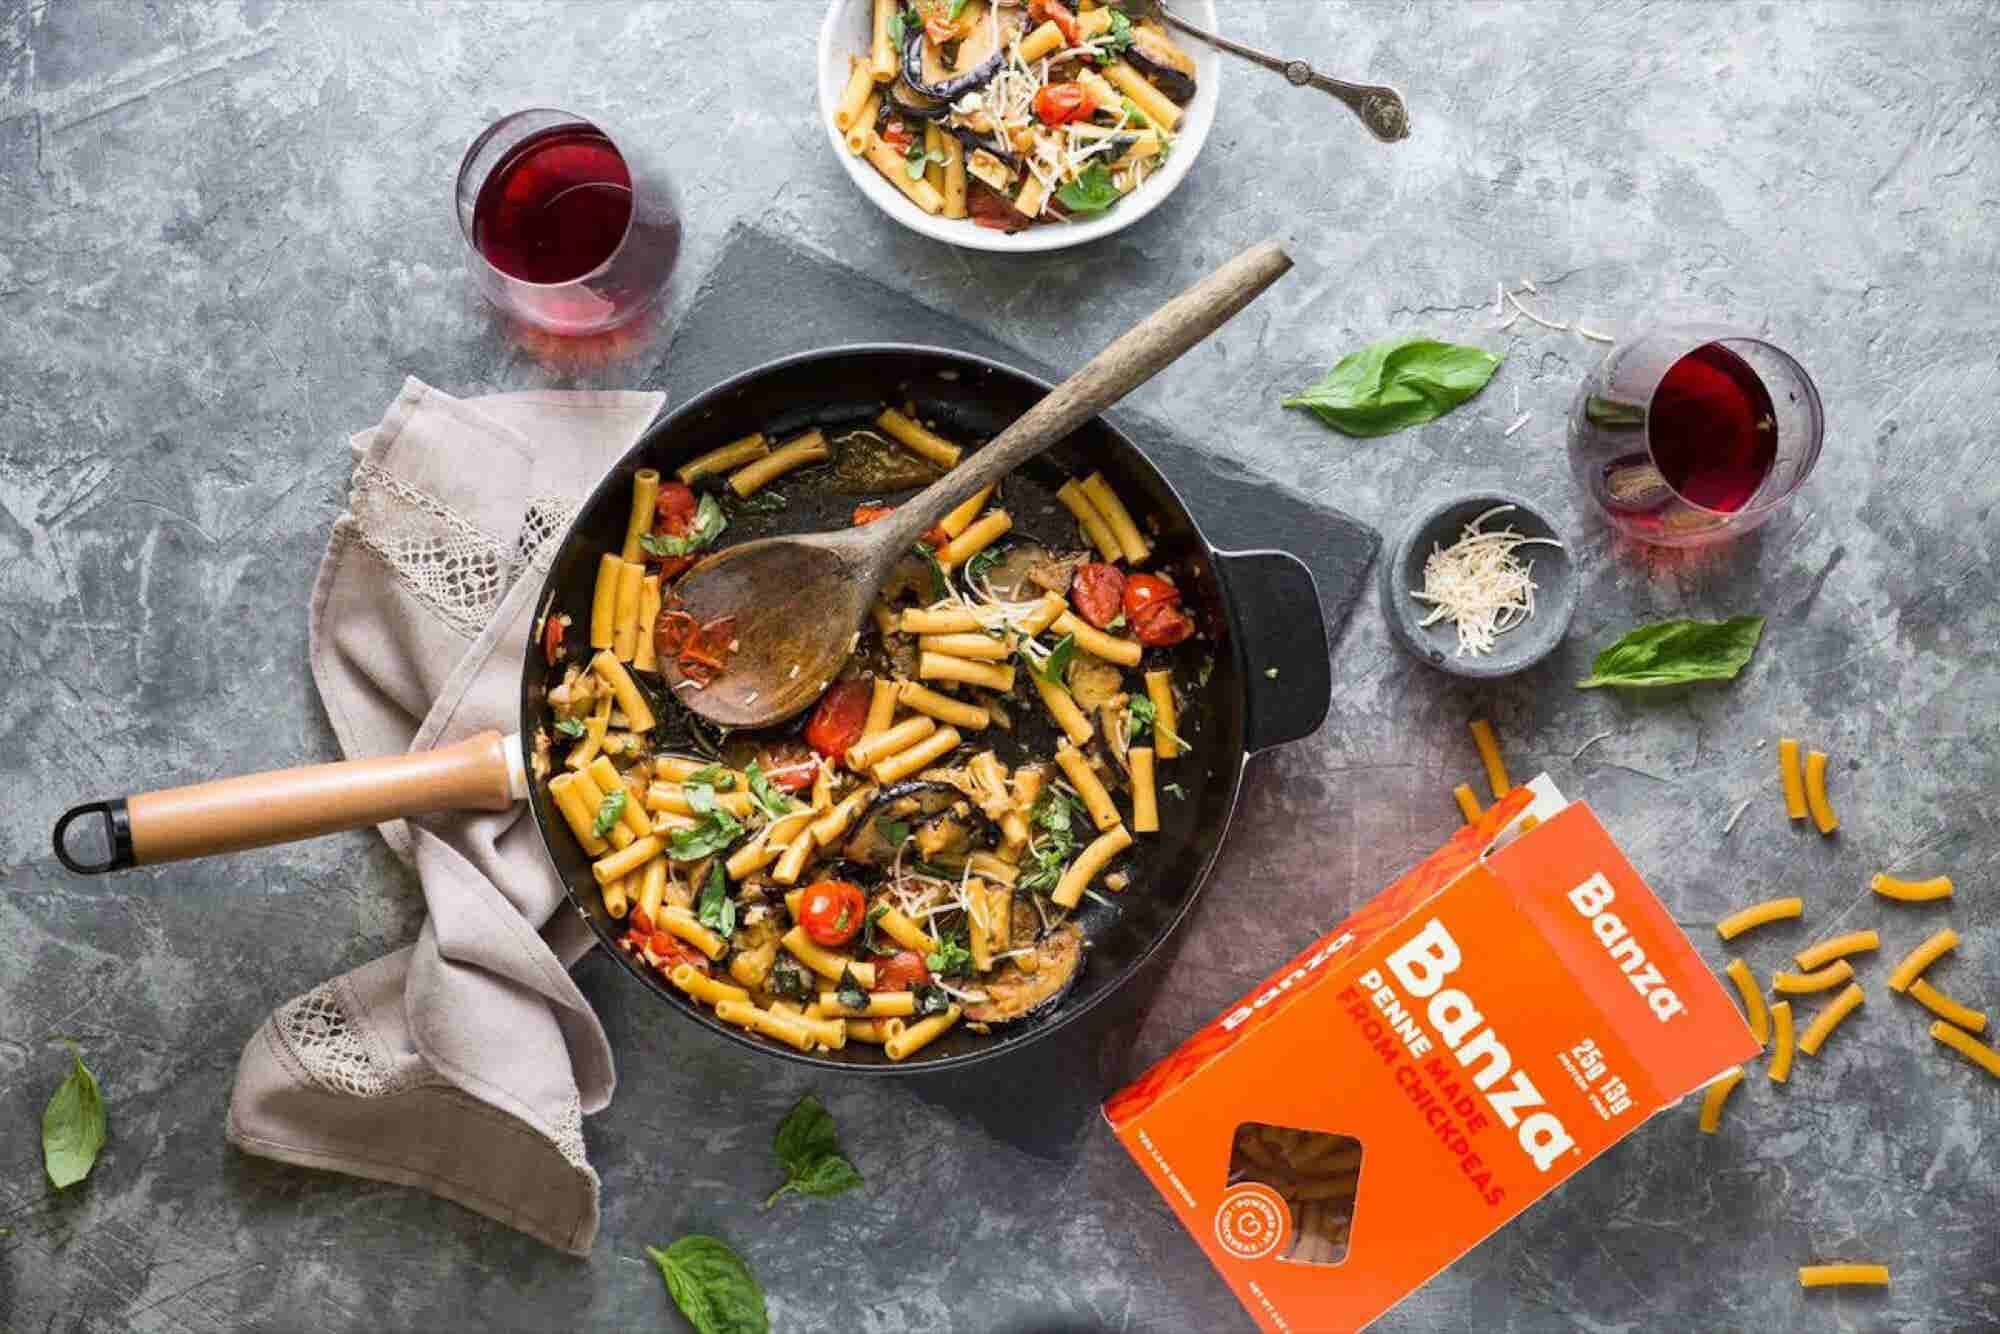 How This Meal Kit Company Fulfills Its Mission by Putting Other Companies in the Spotlight